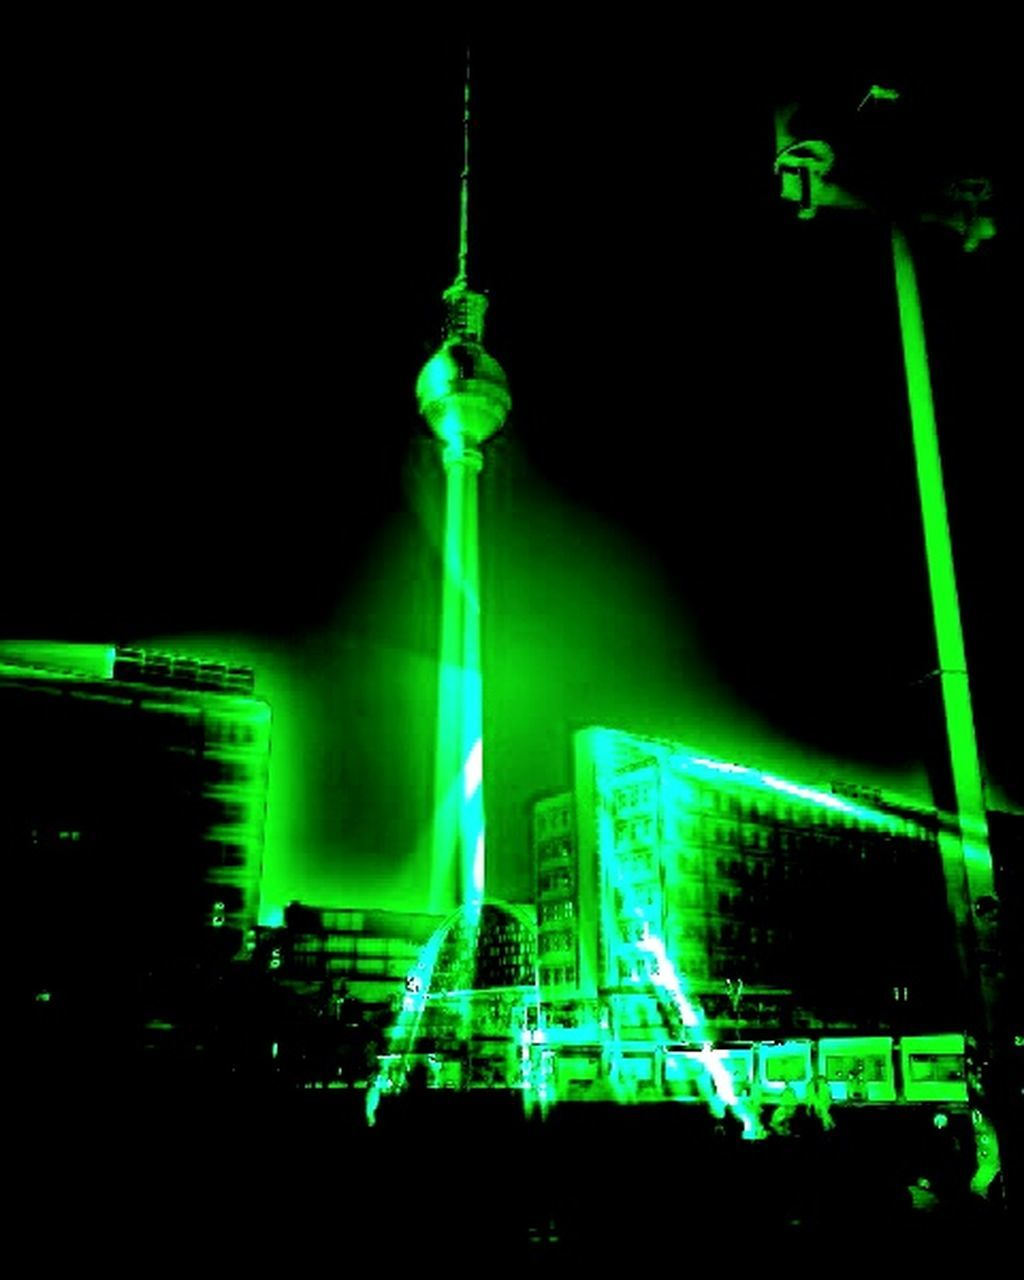 green color, illuminated, night, neon, outdoors, no people